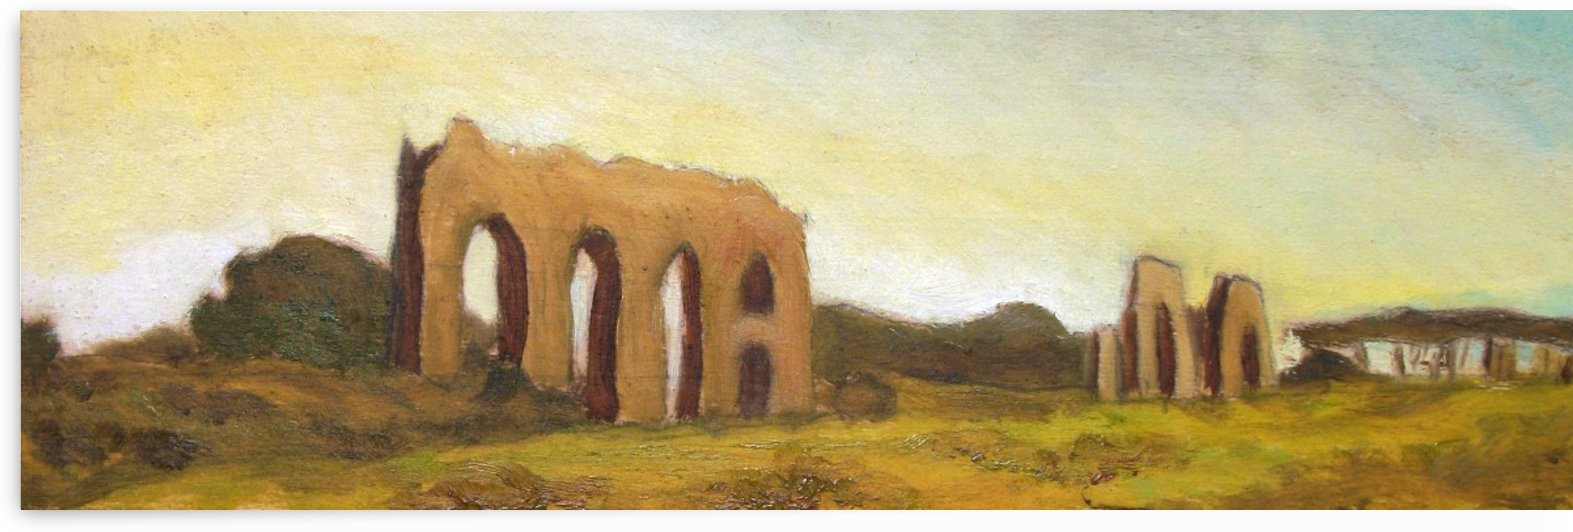 ROMAN COUNTRYSIDE LANDSCAPE: THE ANCIENT ROMAN AQUEDUCTS  by Alessandro Nesci